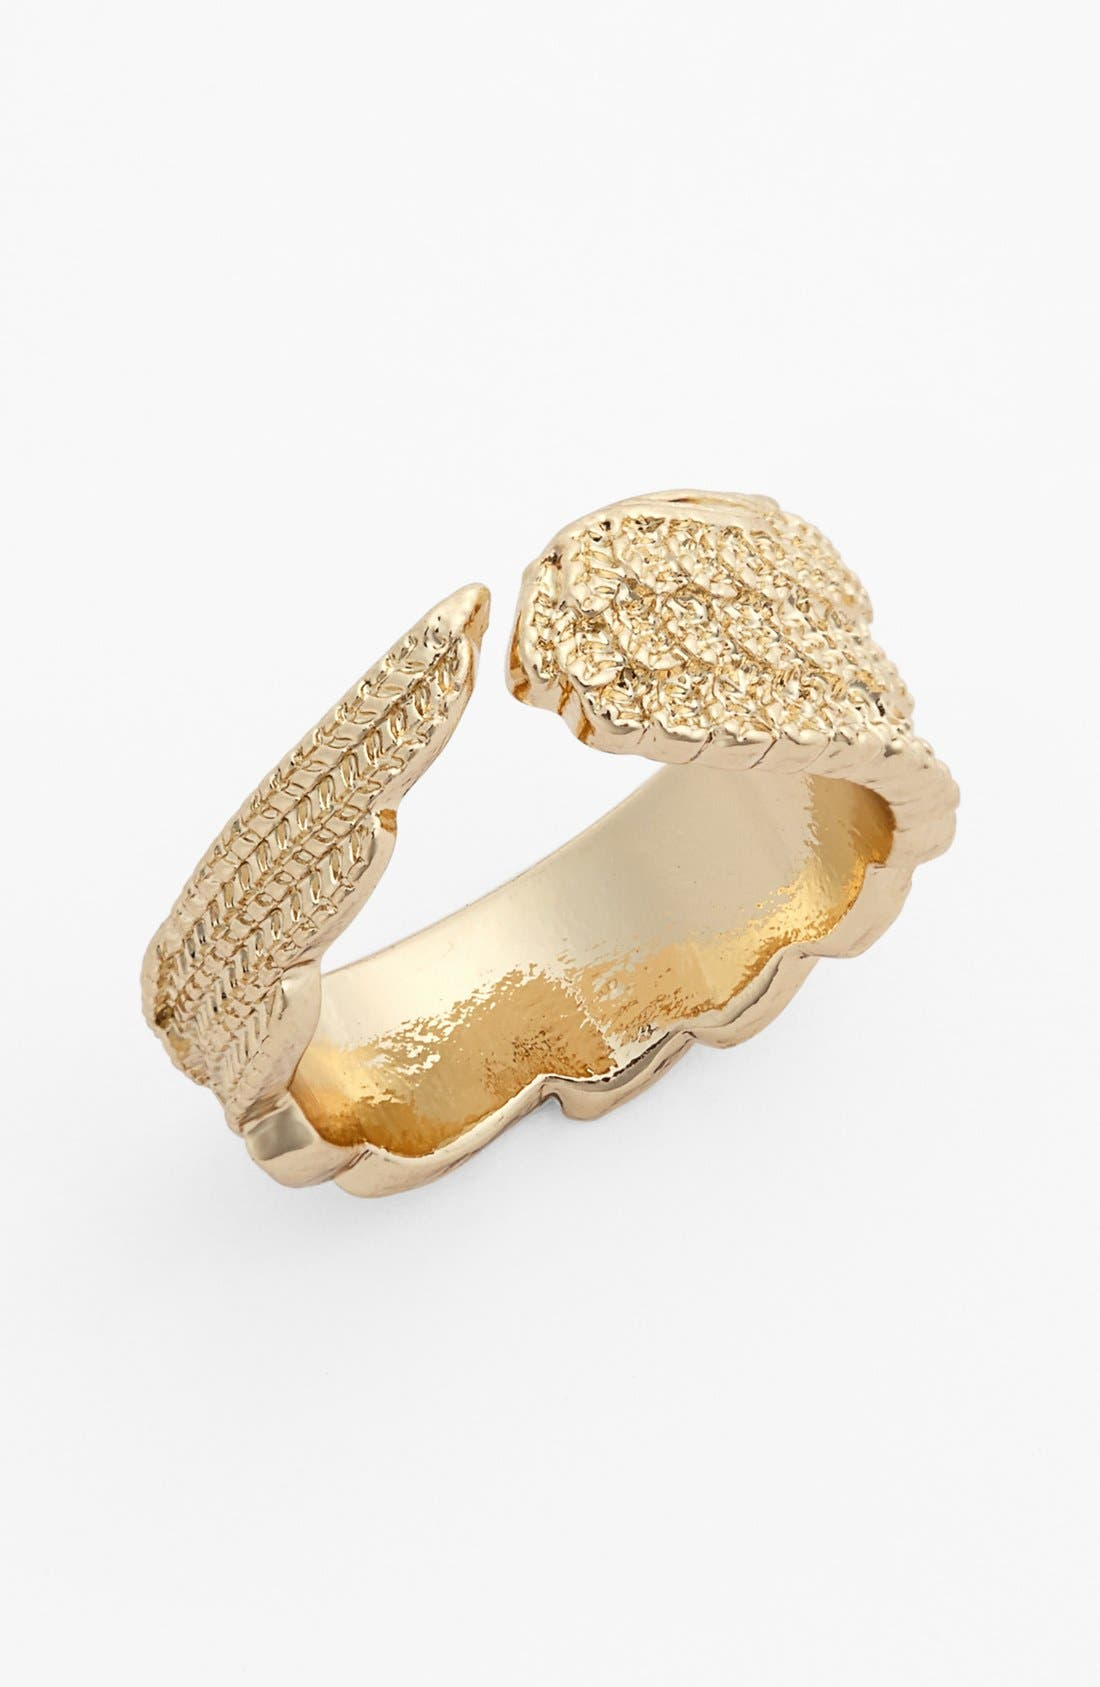 Alternate Image 1 Selected - Metal Haven by KENDALL + KYLIE 'Angel' Ring (Juniors) (Nordstrom Exclusive)